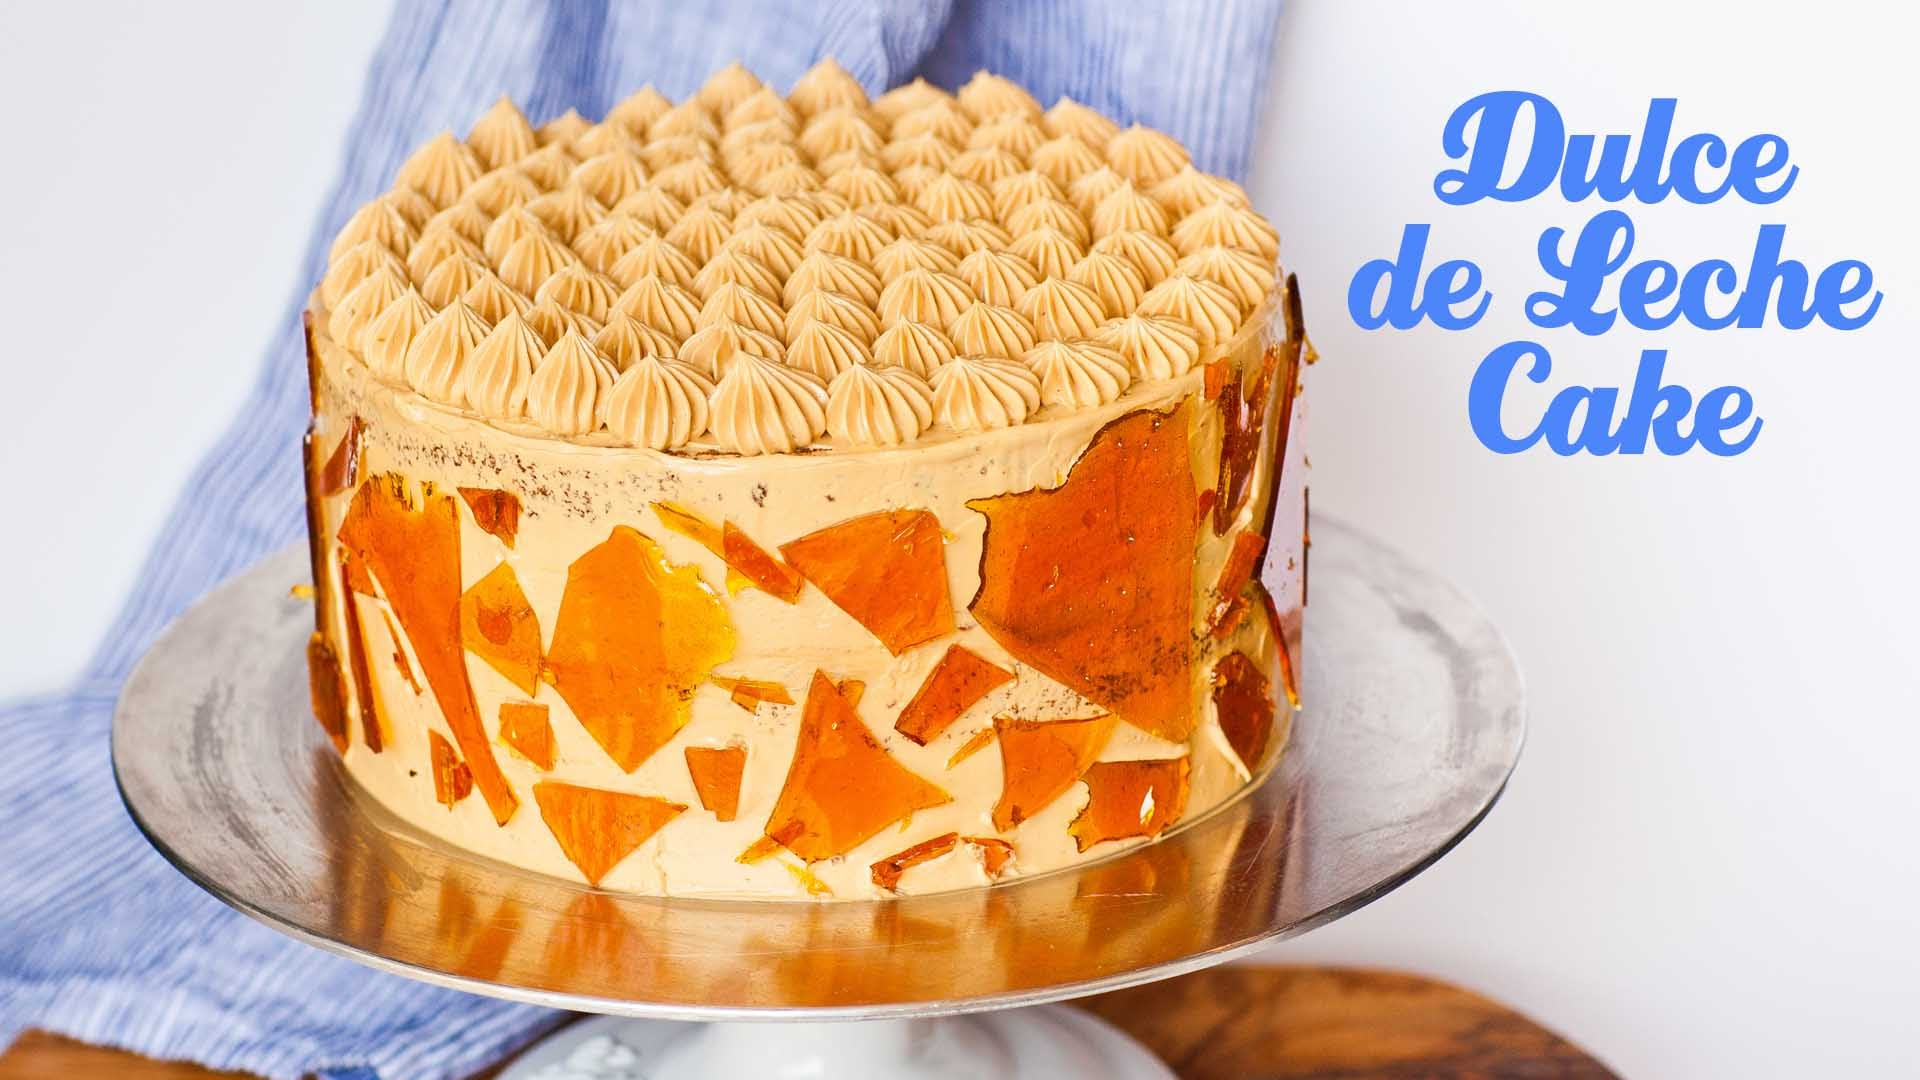 She Makes This Dulce de Leche Cake Into A Work Of Art